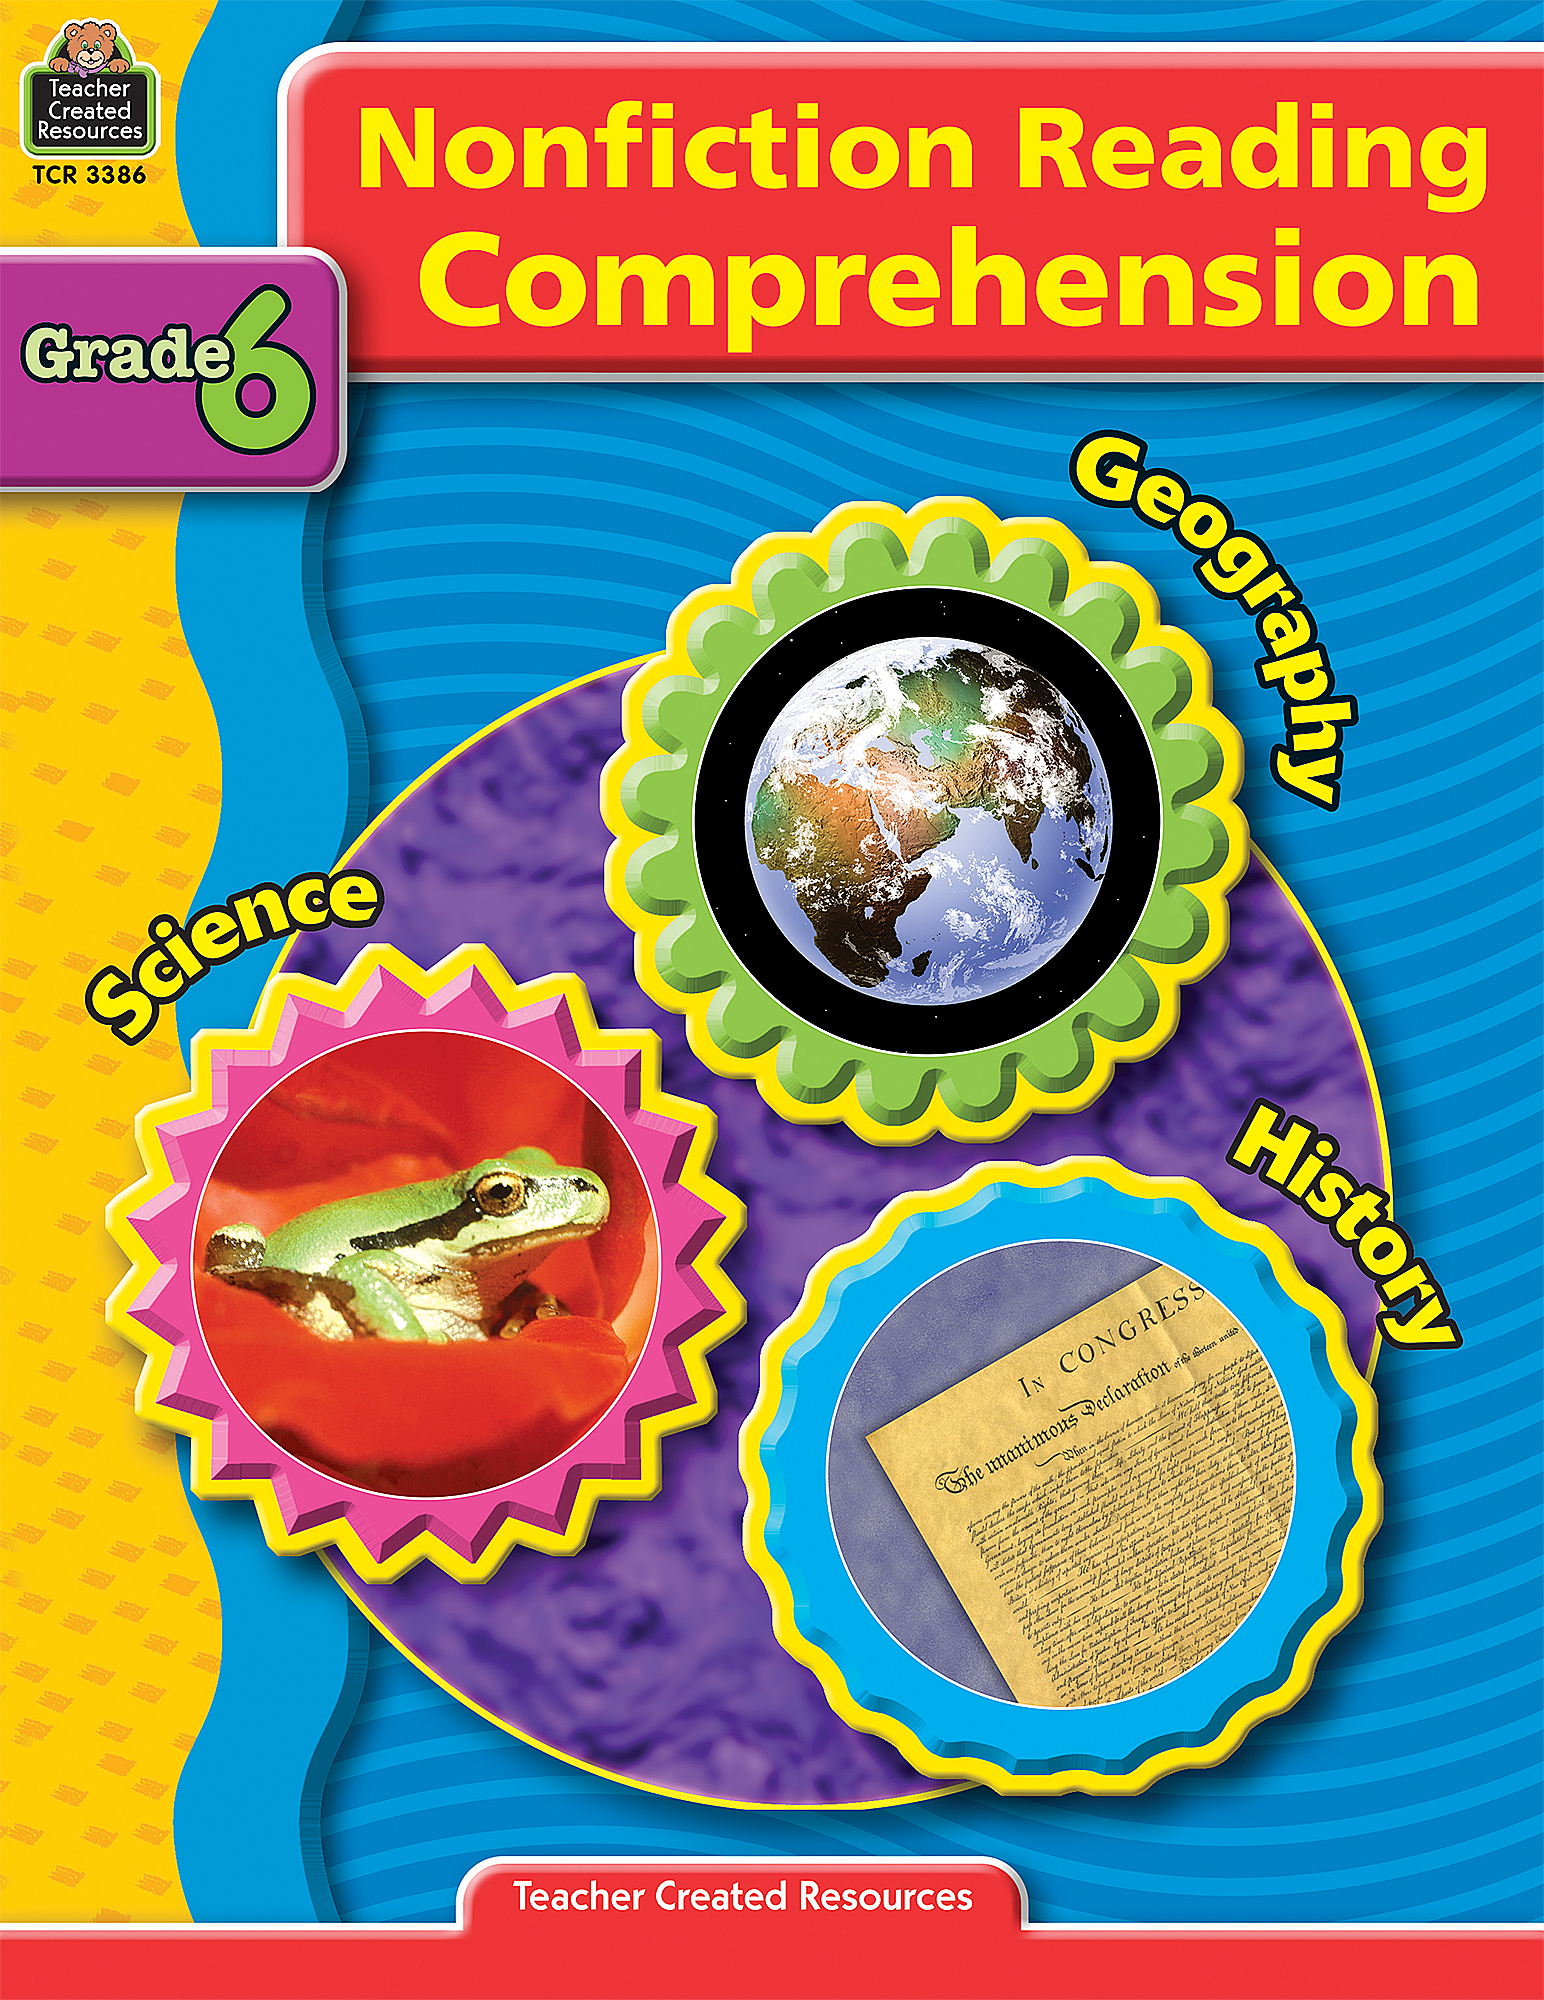 Nonfiction Reading Comprehension Grade 6 TCR3386 – Teacher Created Resources Inc Worksheets Answers